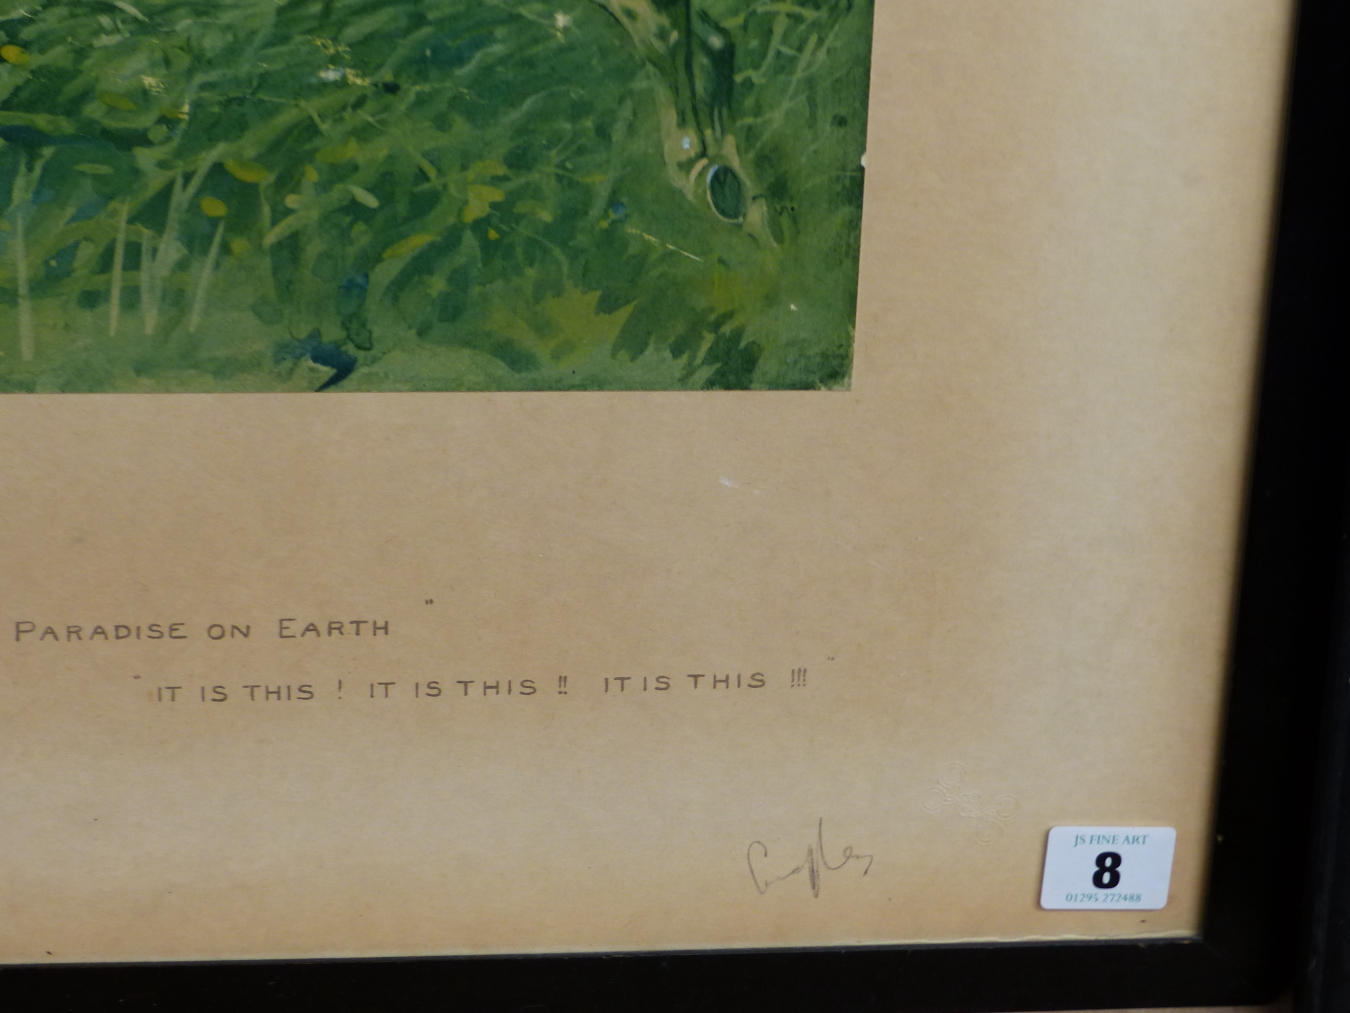 SNAFFLES, CHARLES JOHNSON PAYNE (1884-1967) IF THERE IS A PARADISE ON EARTH, IT IS THIS. PENCIL - Image 4 of 4